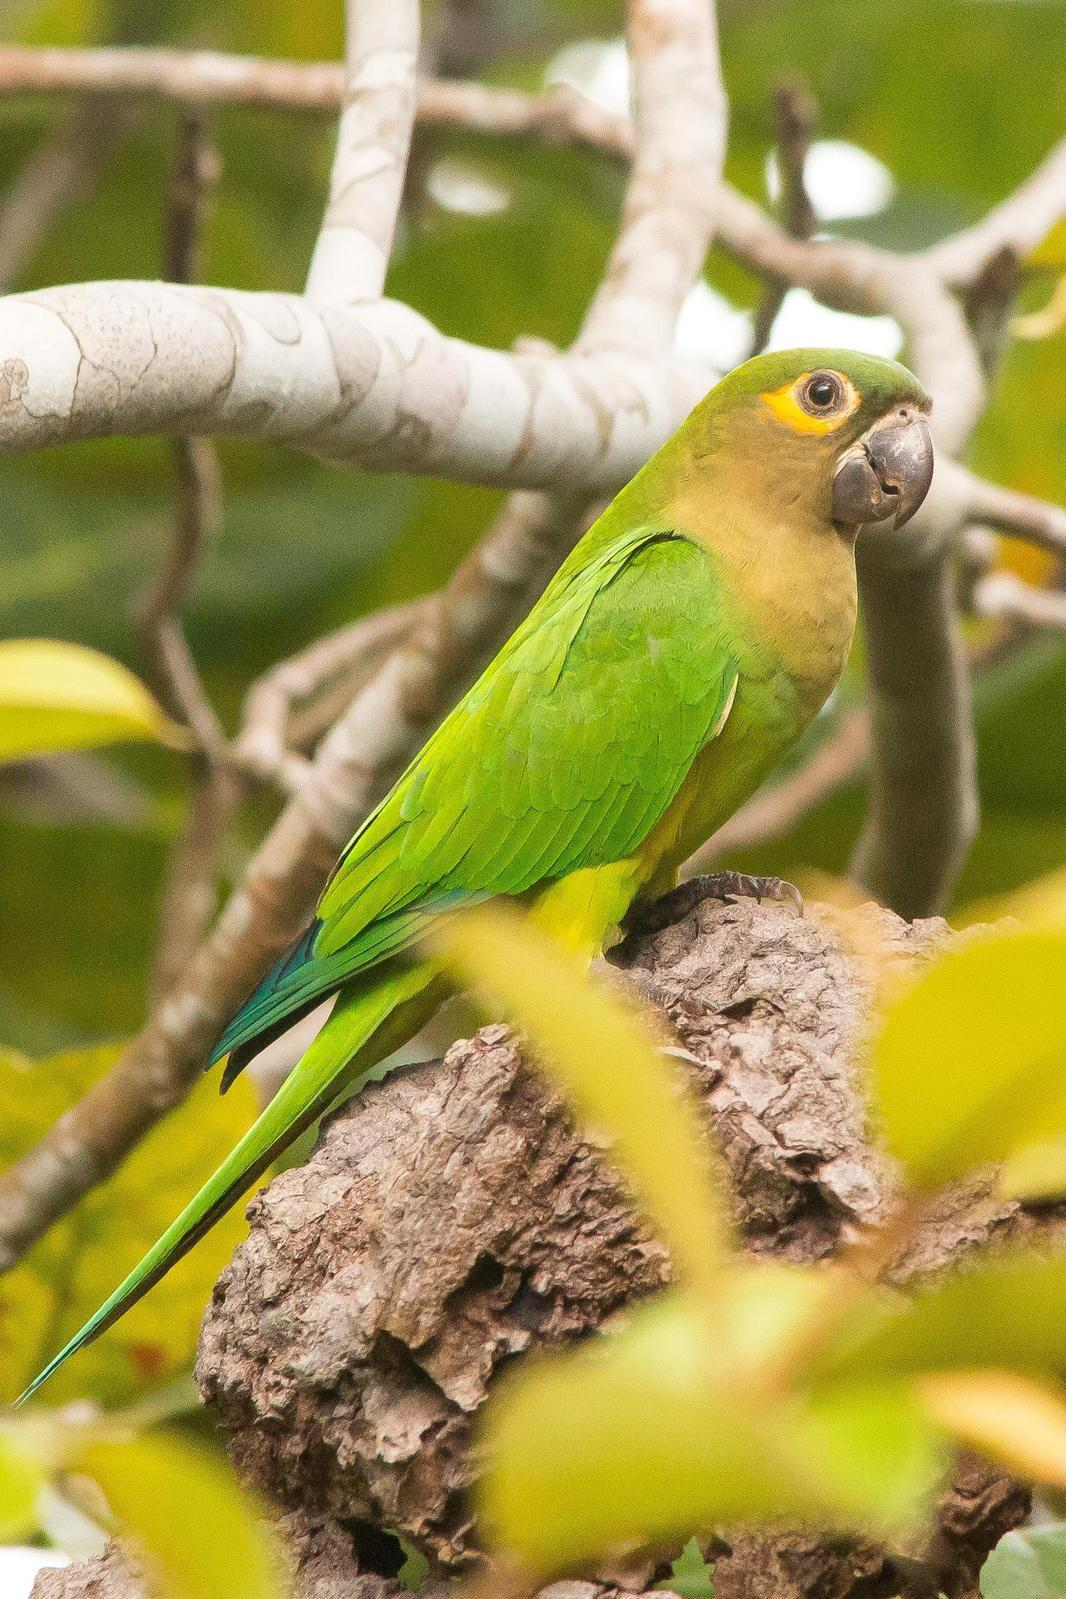 Brown-throated Parakeet Photo by Marie-France Rivard